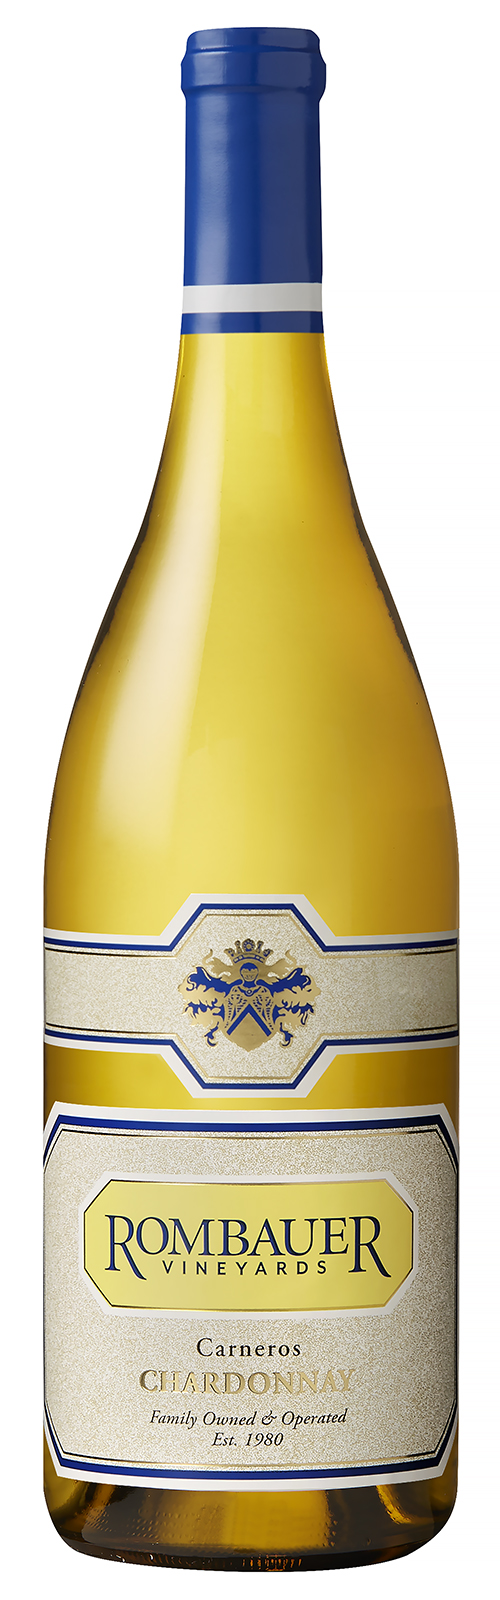 Rombauer Chardonnay Carneros 2015, 1.5L () from The BPW - Merchants of rare and fine wines.